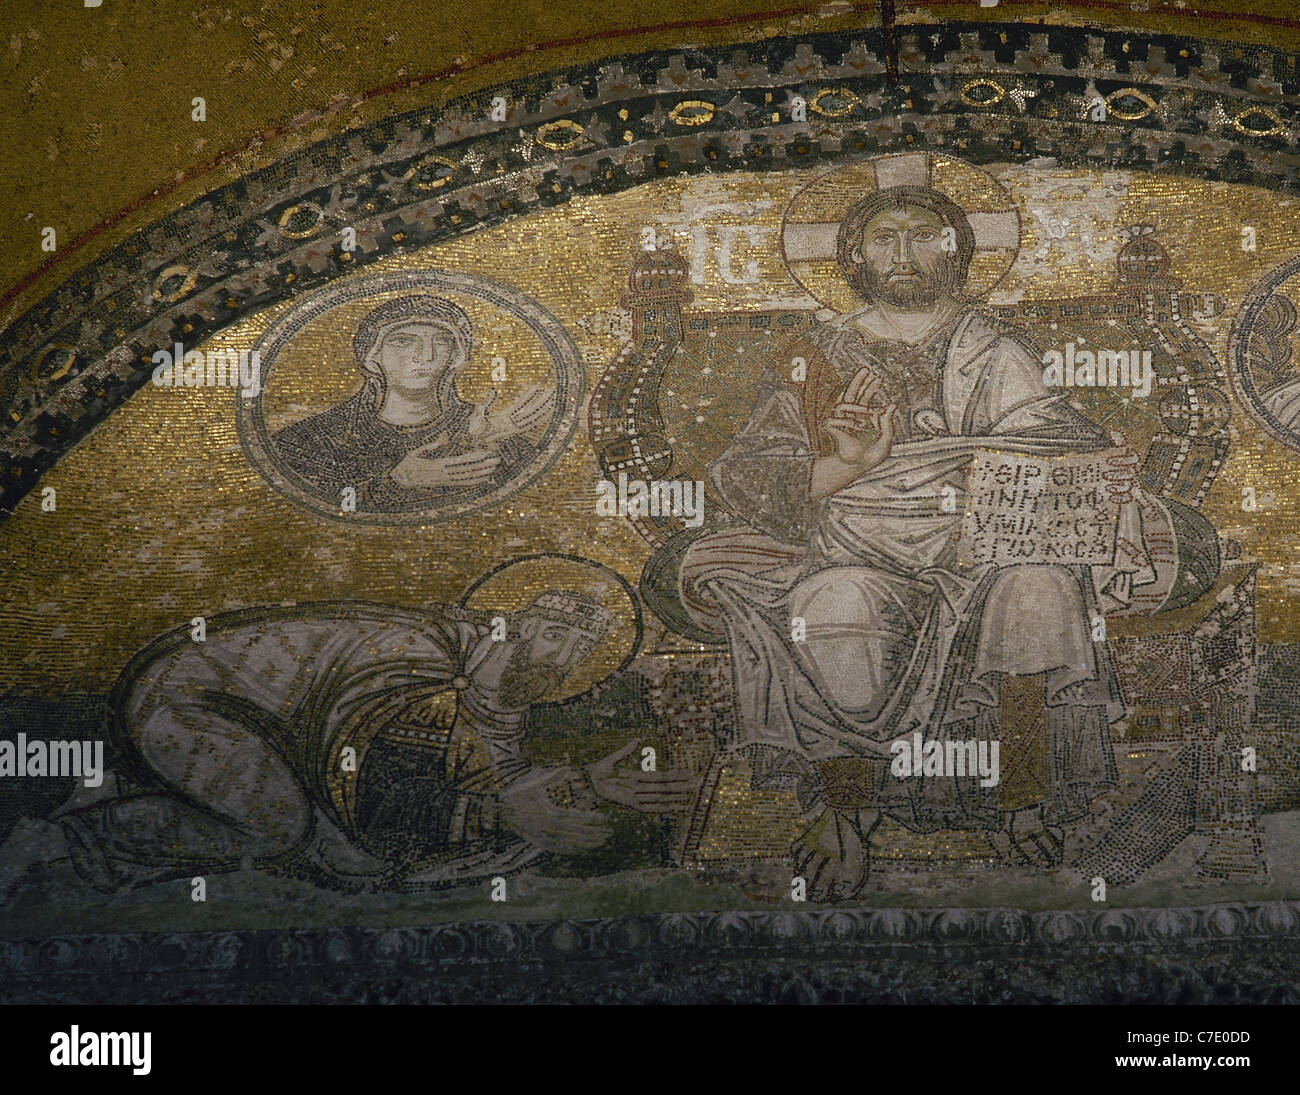 Leo VI the Wise (866-912). Byzantine Emperor. Leo VI kneeling before Christ. Mosaic. Tympanum of the Imperial Gate. - Stock Image